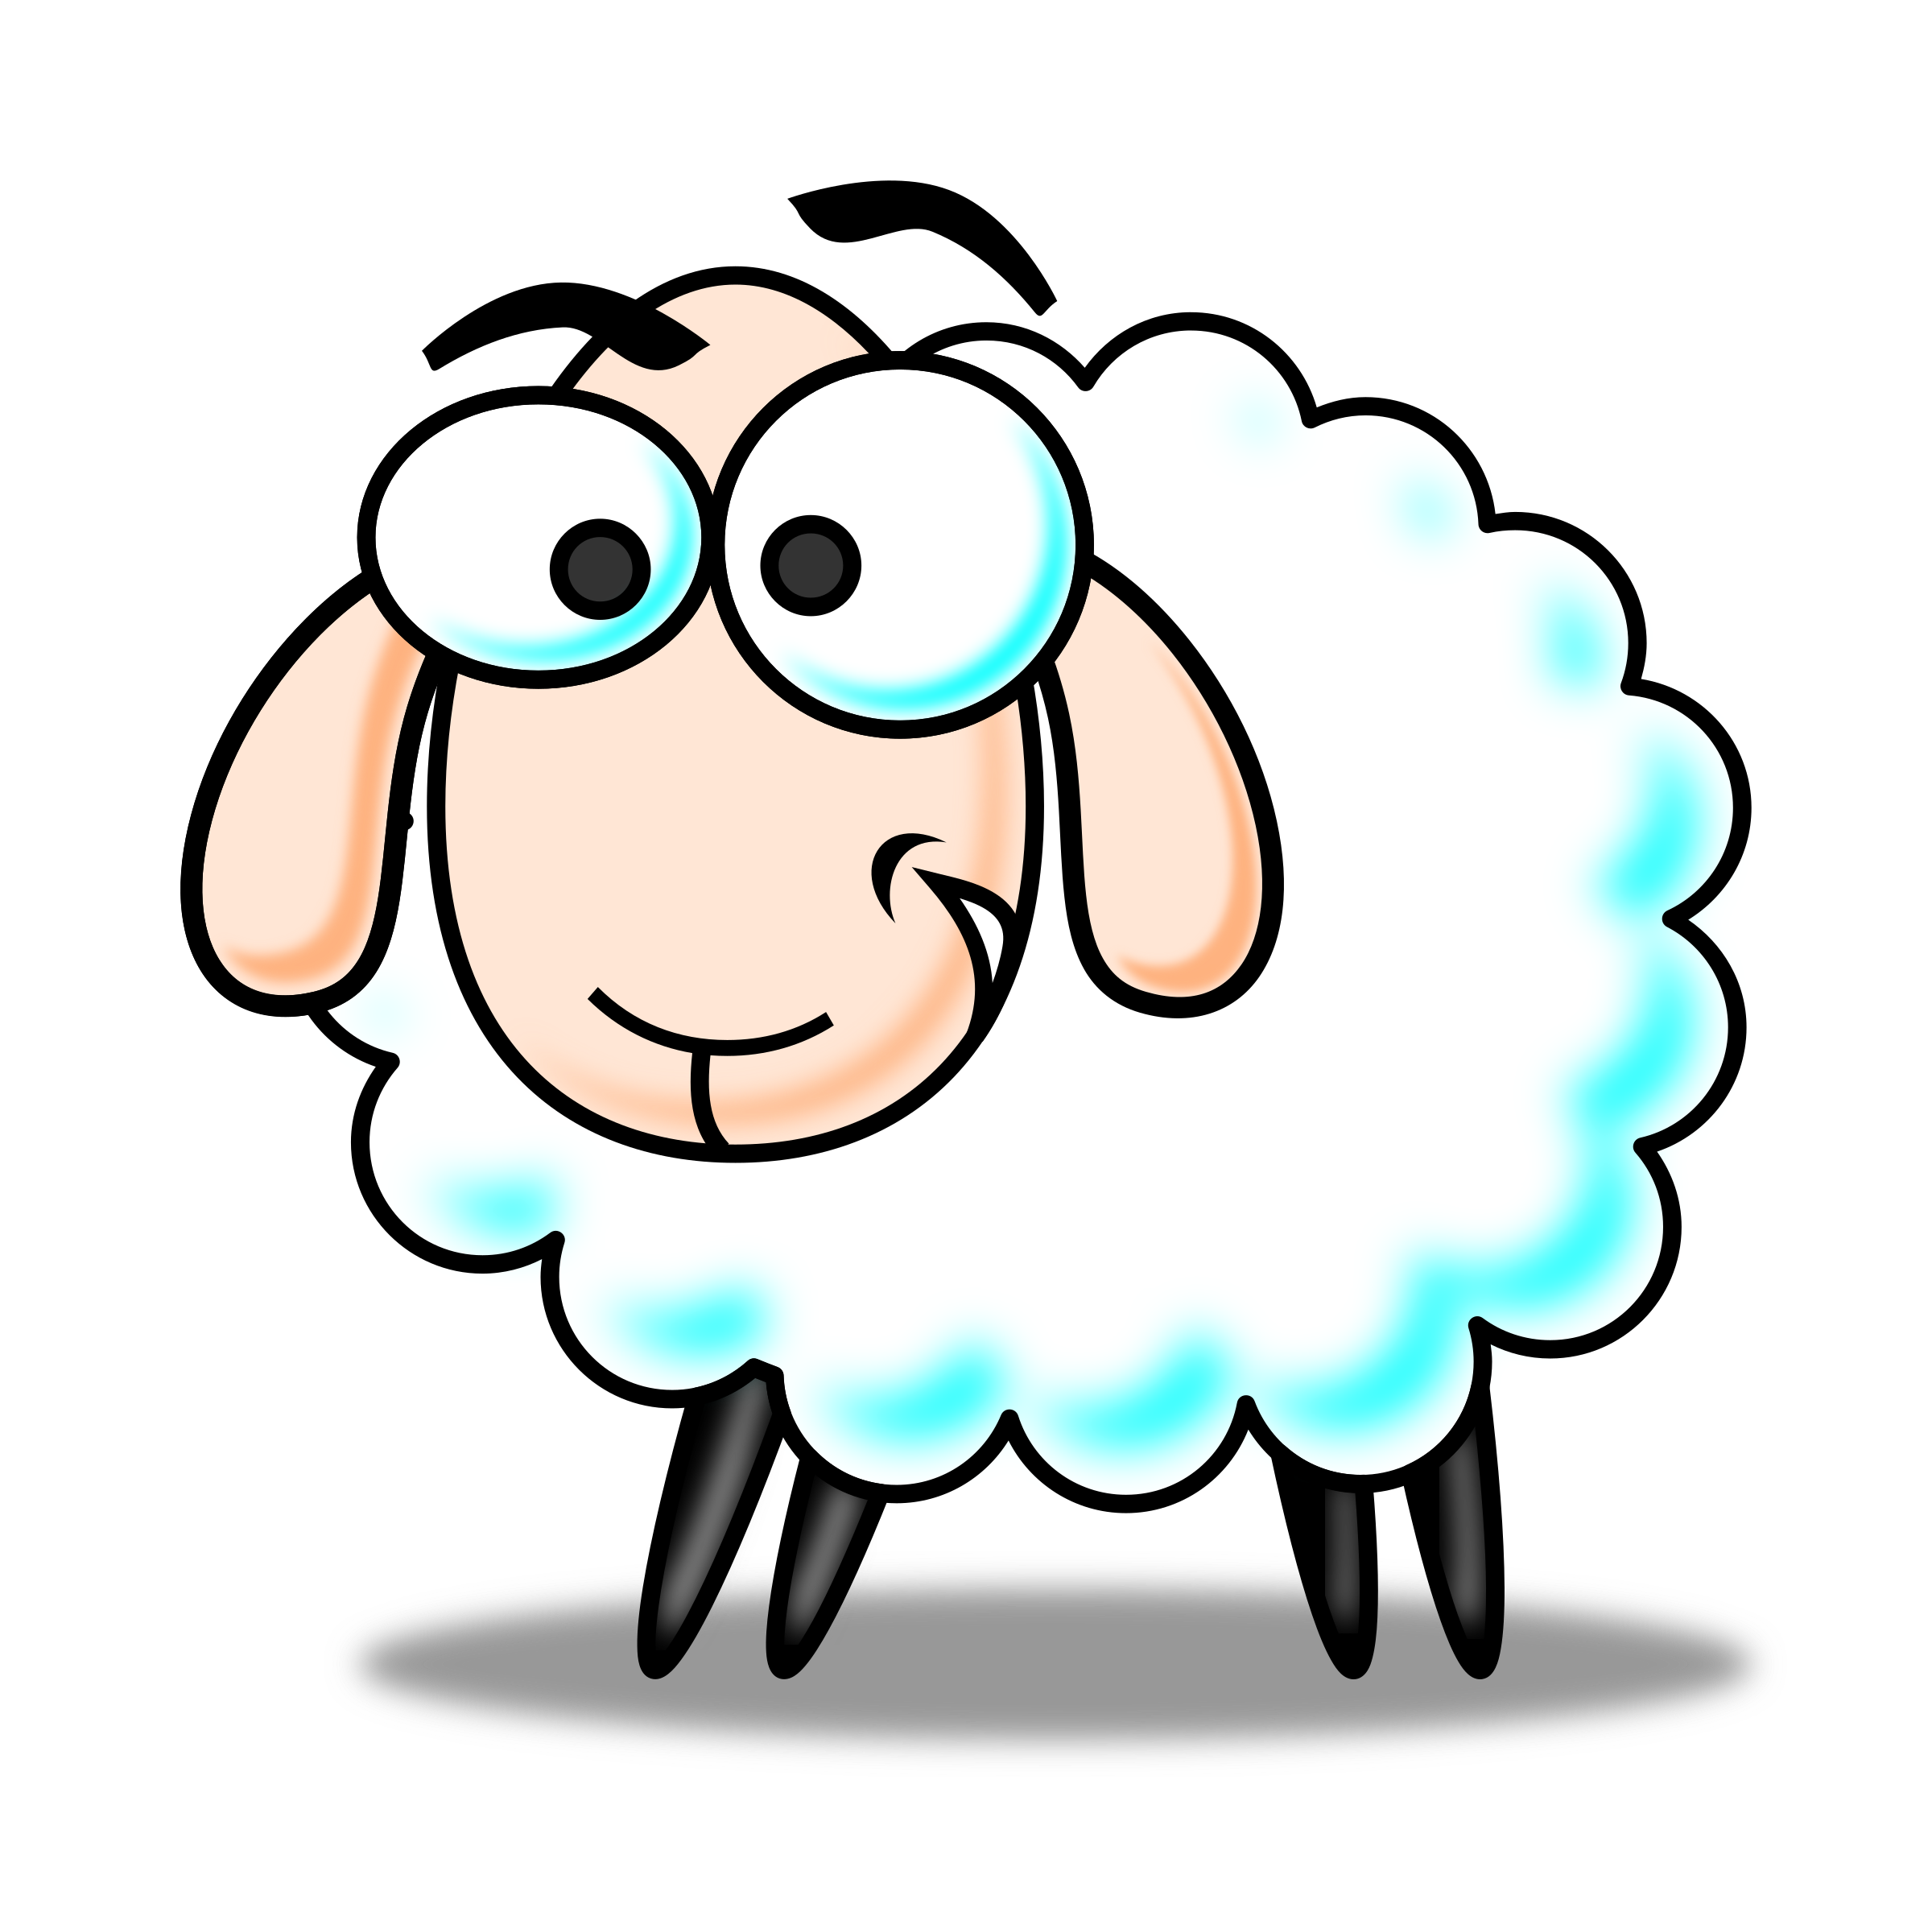 Turkey as a sheep clipart jpg transparent library Cartoon Ewe Group (69+) jpg transparent library